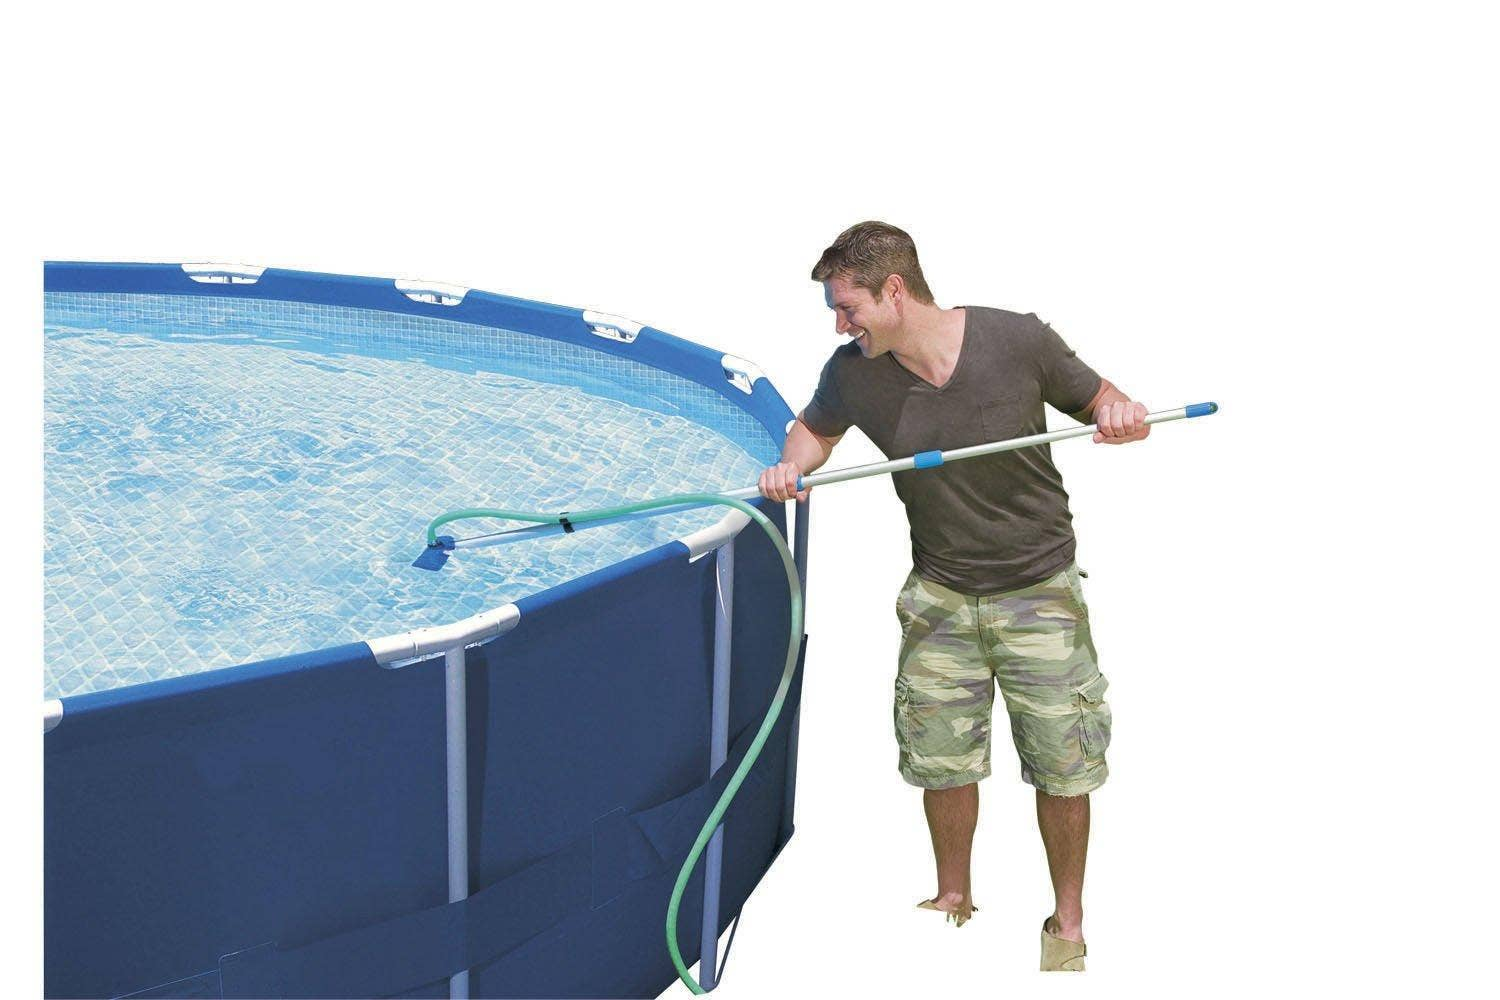 Intex Pool Cleaning